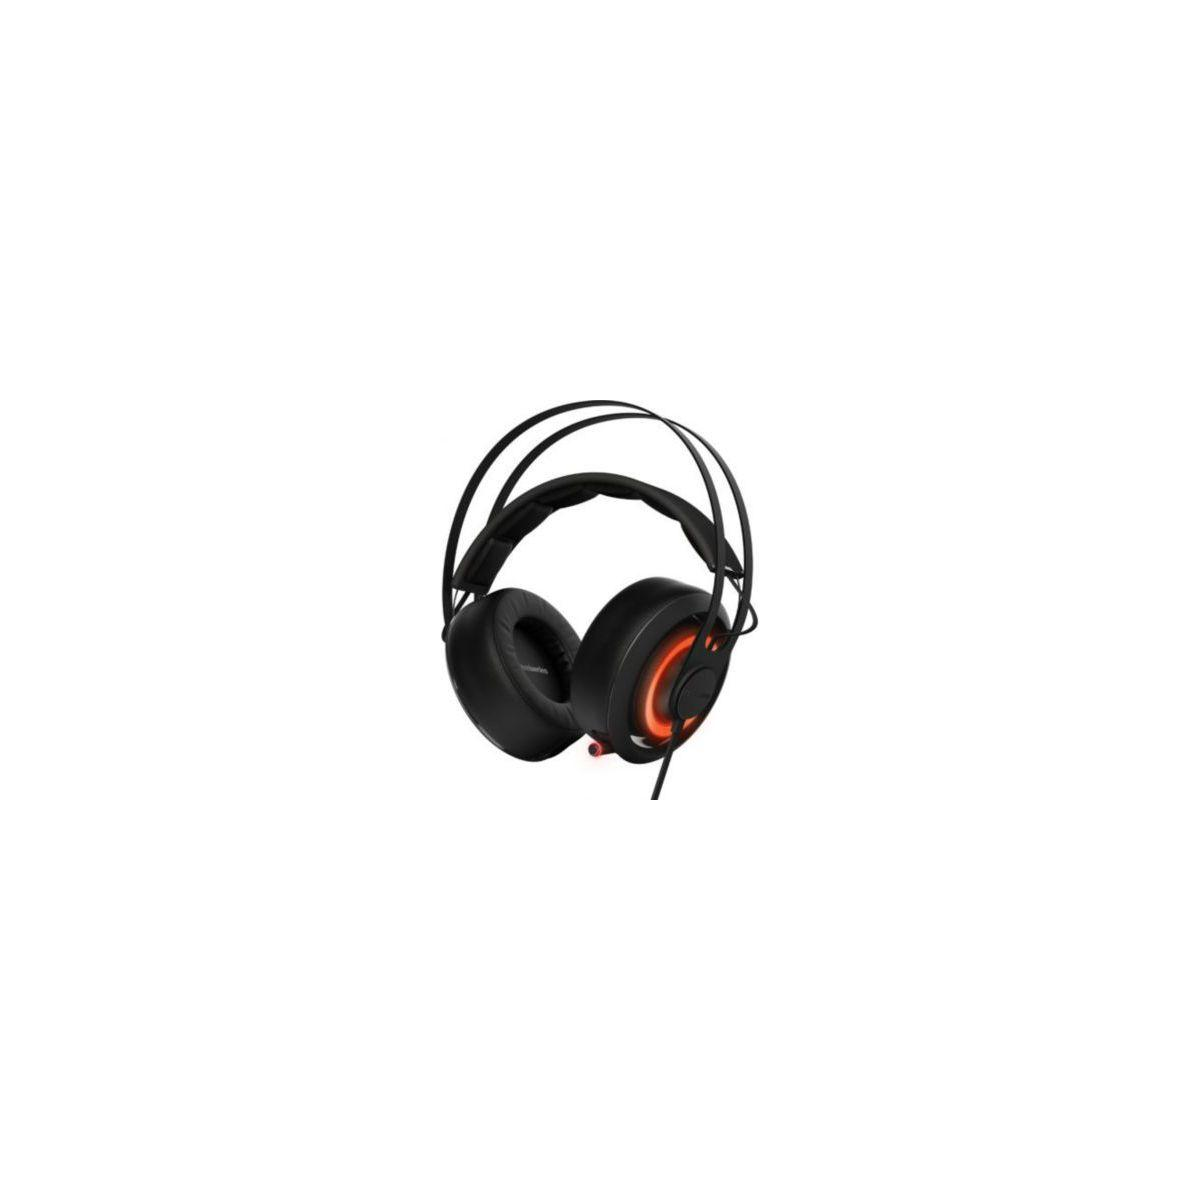 Casque micro gamer steelseries siberia 650 black - 5% de remise : code multi5 (photo)